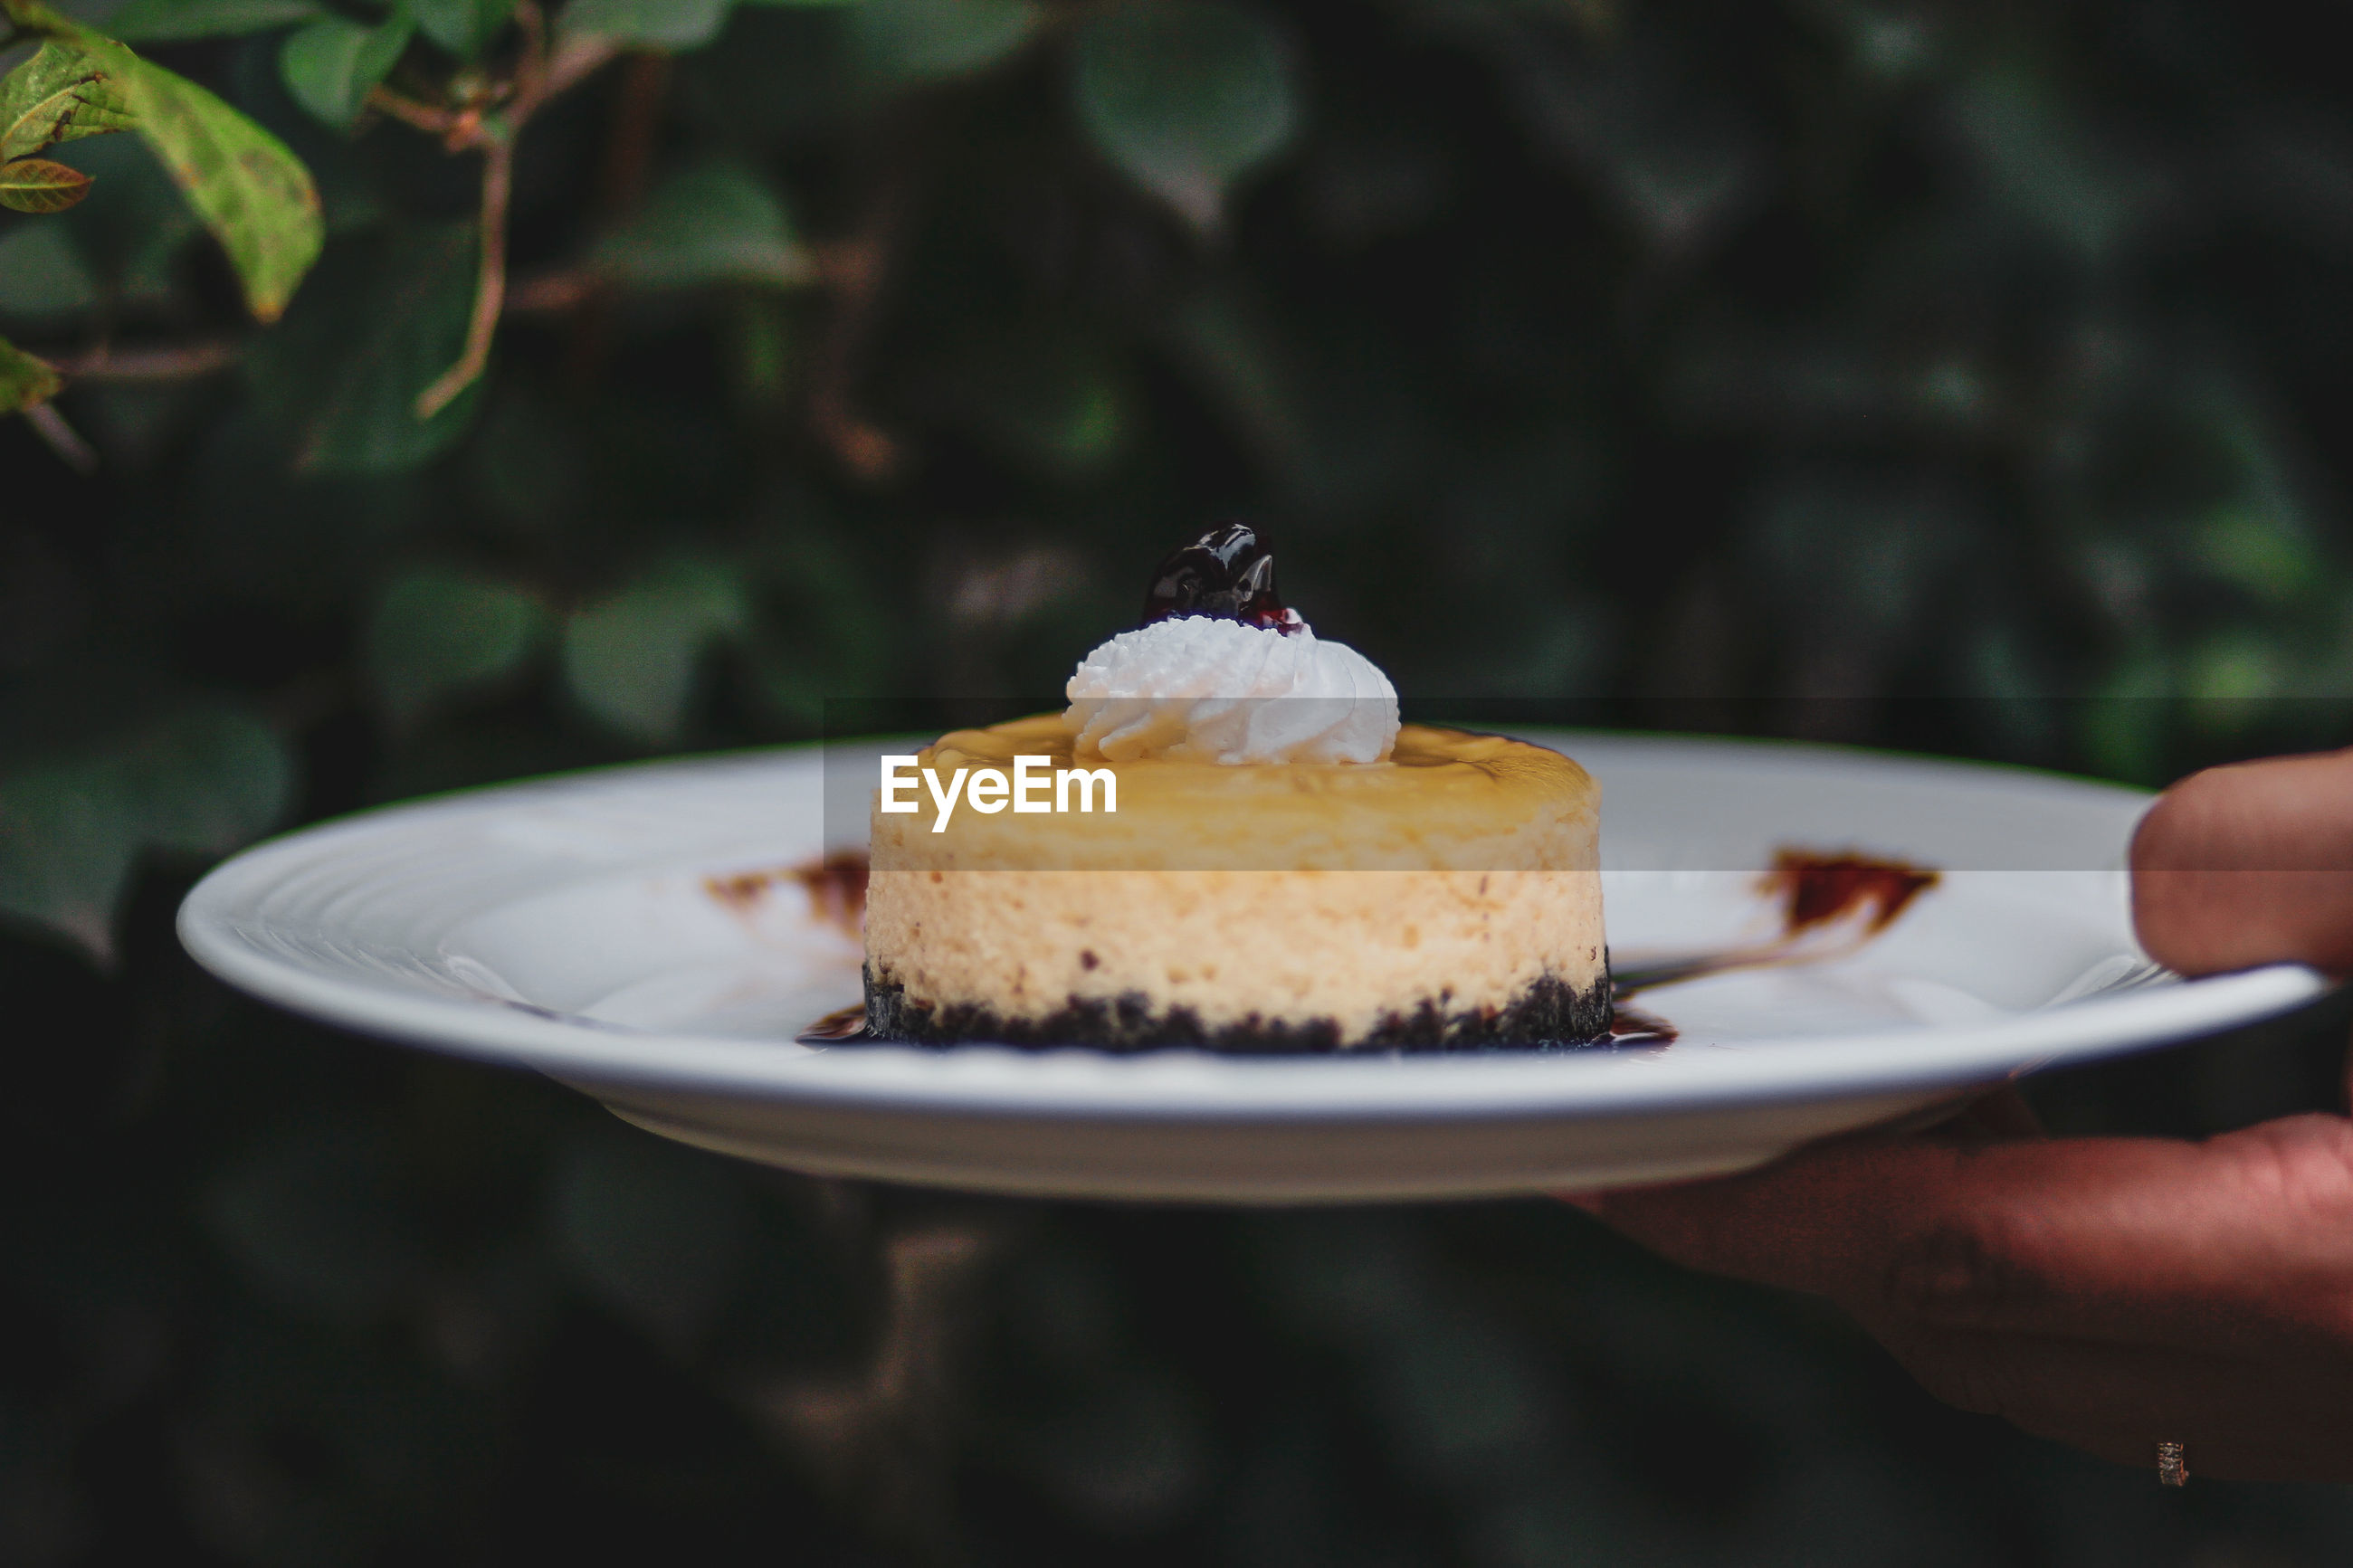 Cropped image of hand holding dessert in plate